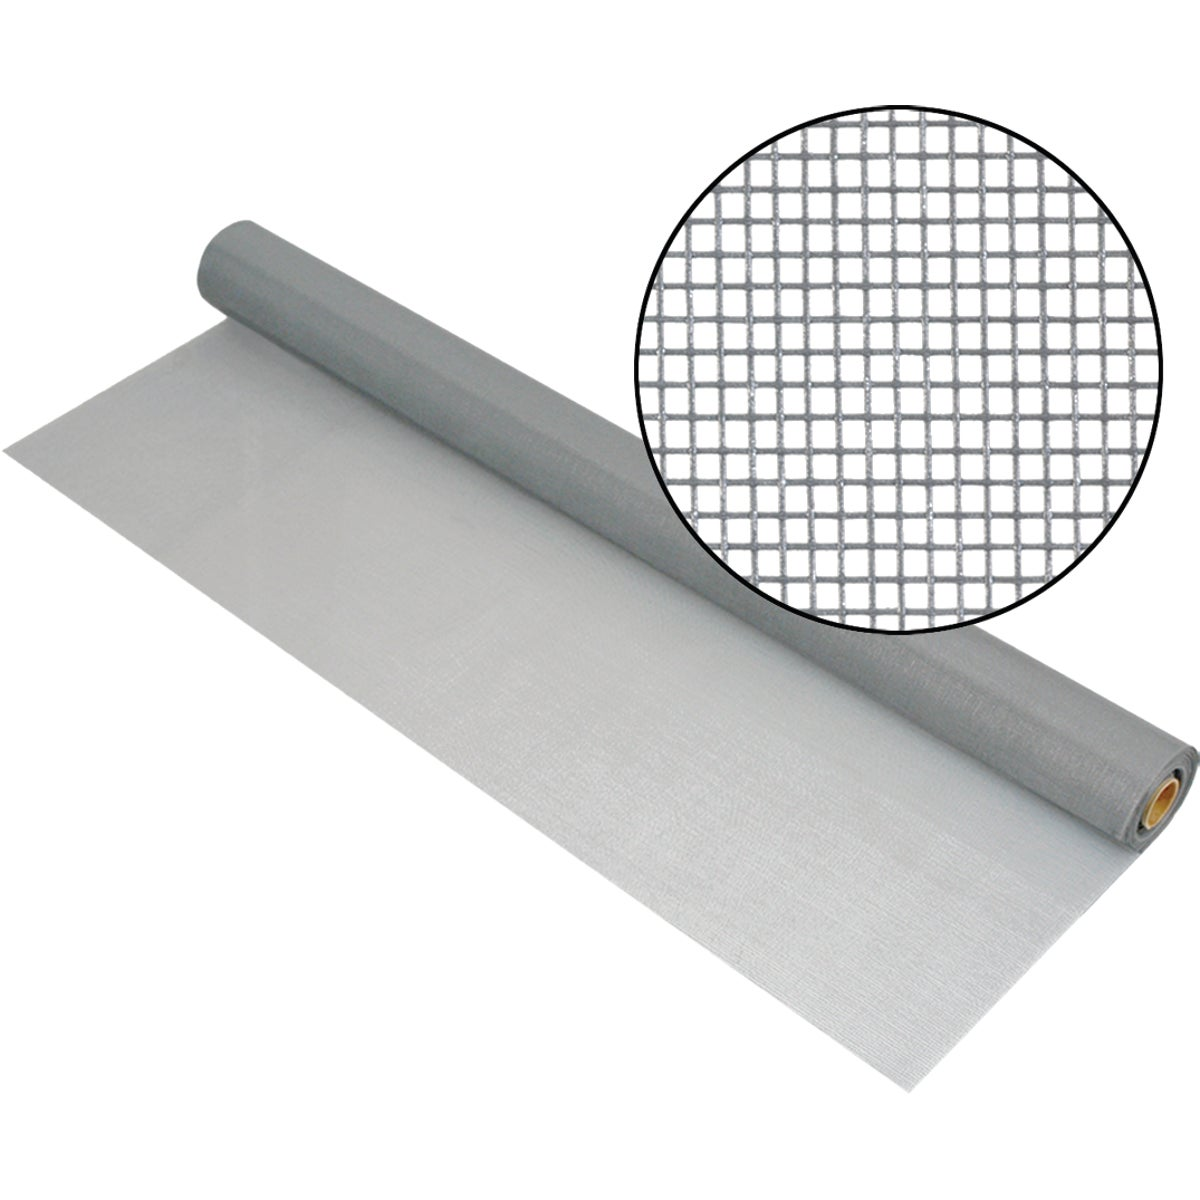 24X100' GRAY FBGL SCREEN - FCS8768M by New York Wire